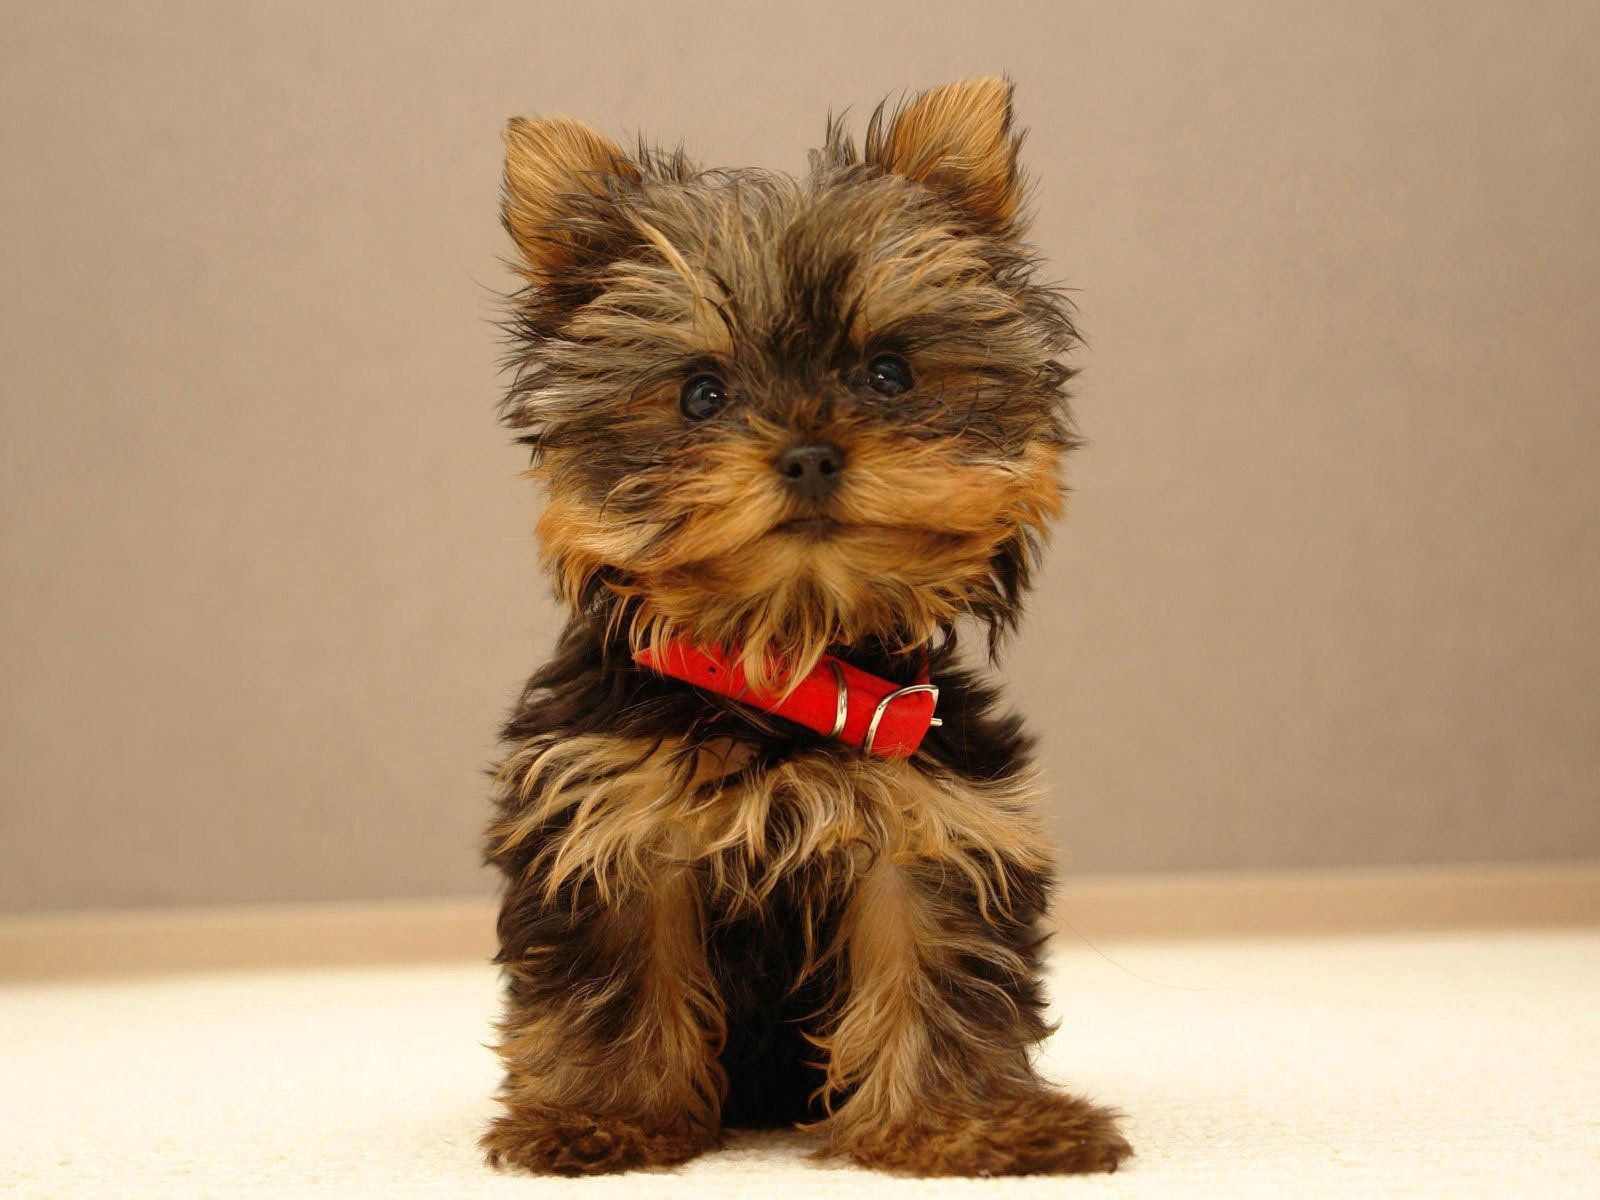 Yorkshire Terriers Wallpaper The Beautiful Yorkie Cute Puppy Wallpaper Cute Small Dogs Puppy Wallpaper